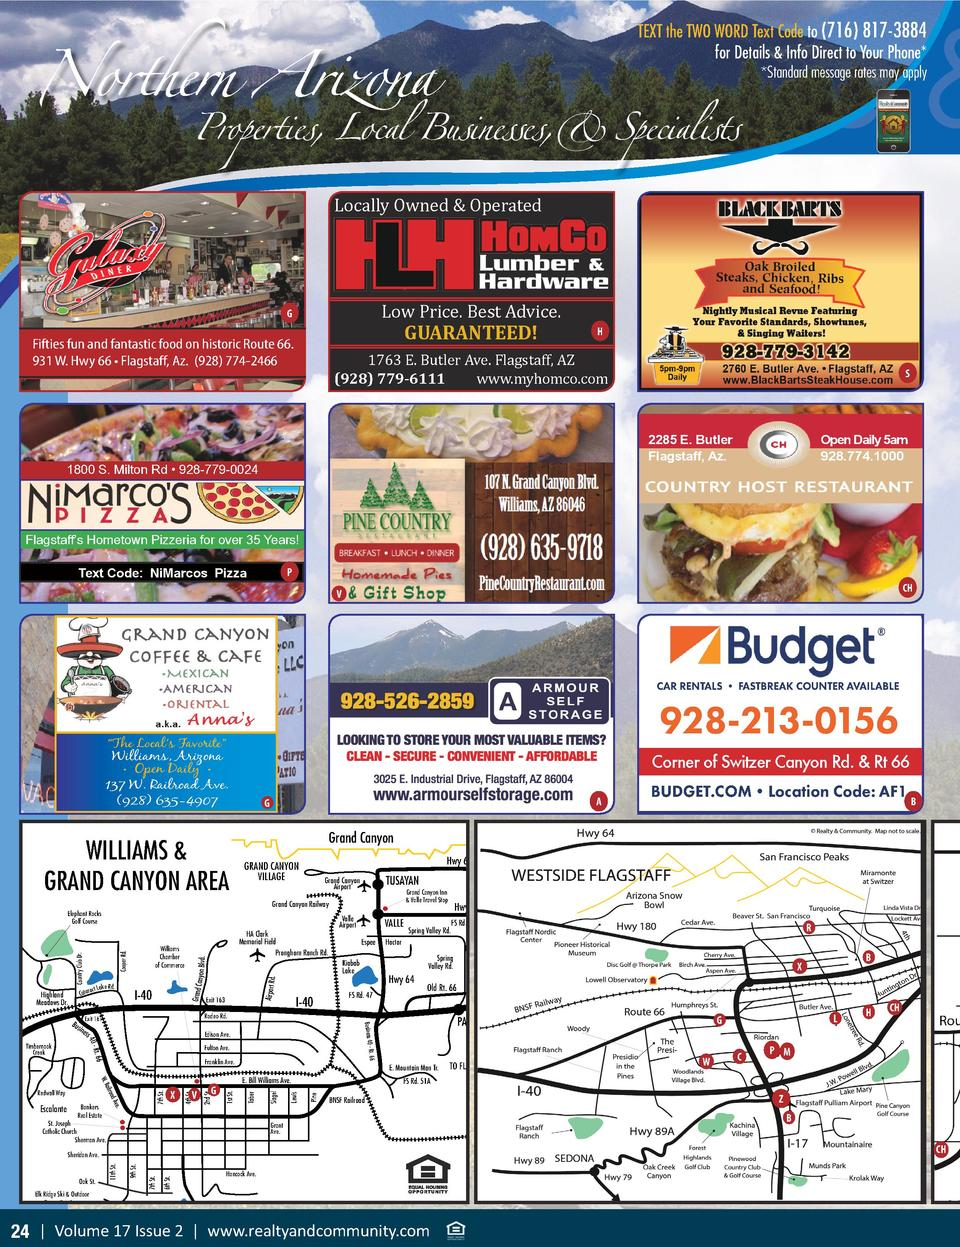 Northern Arizona attractions, speci What To See   Properties, Local Businesses,  Specialists TEXT the TWO WORD Text Code t...